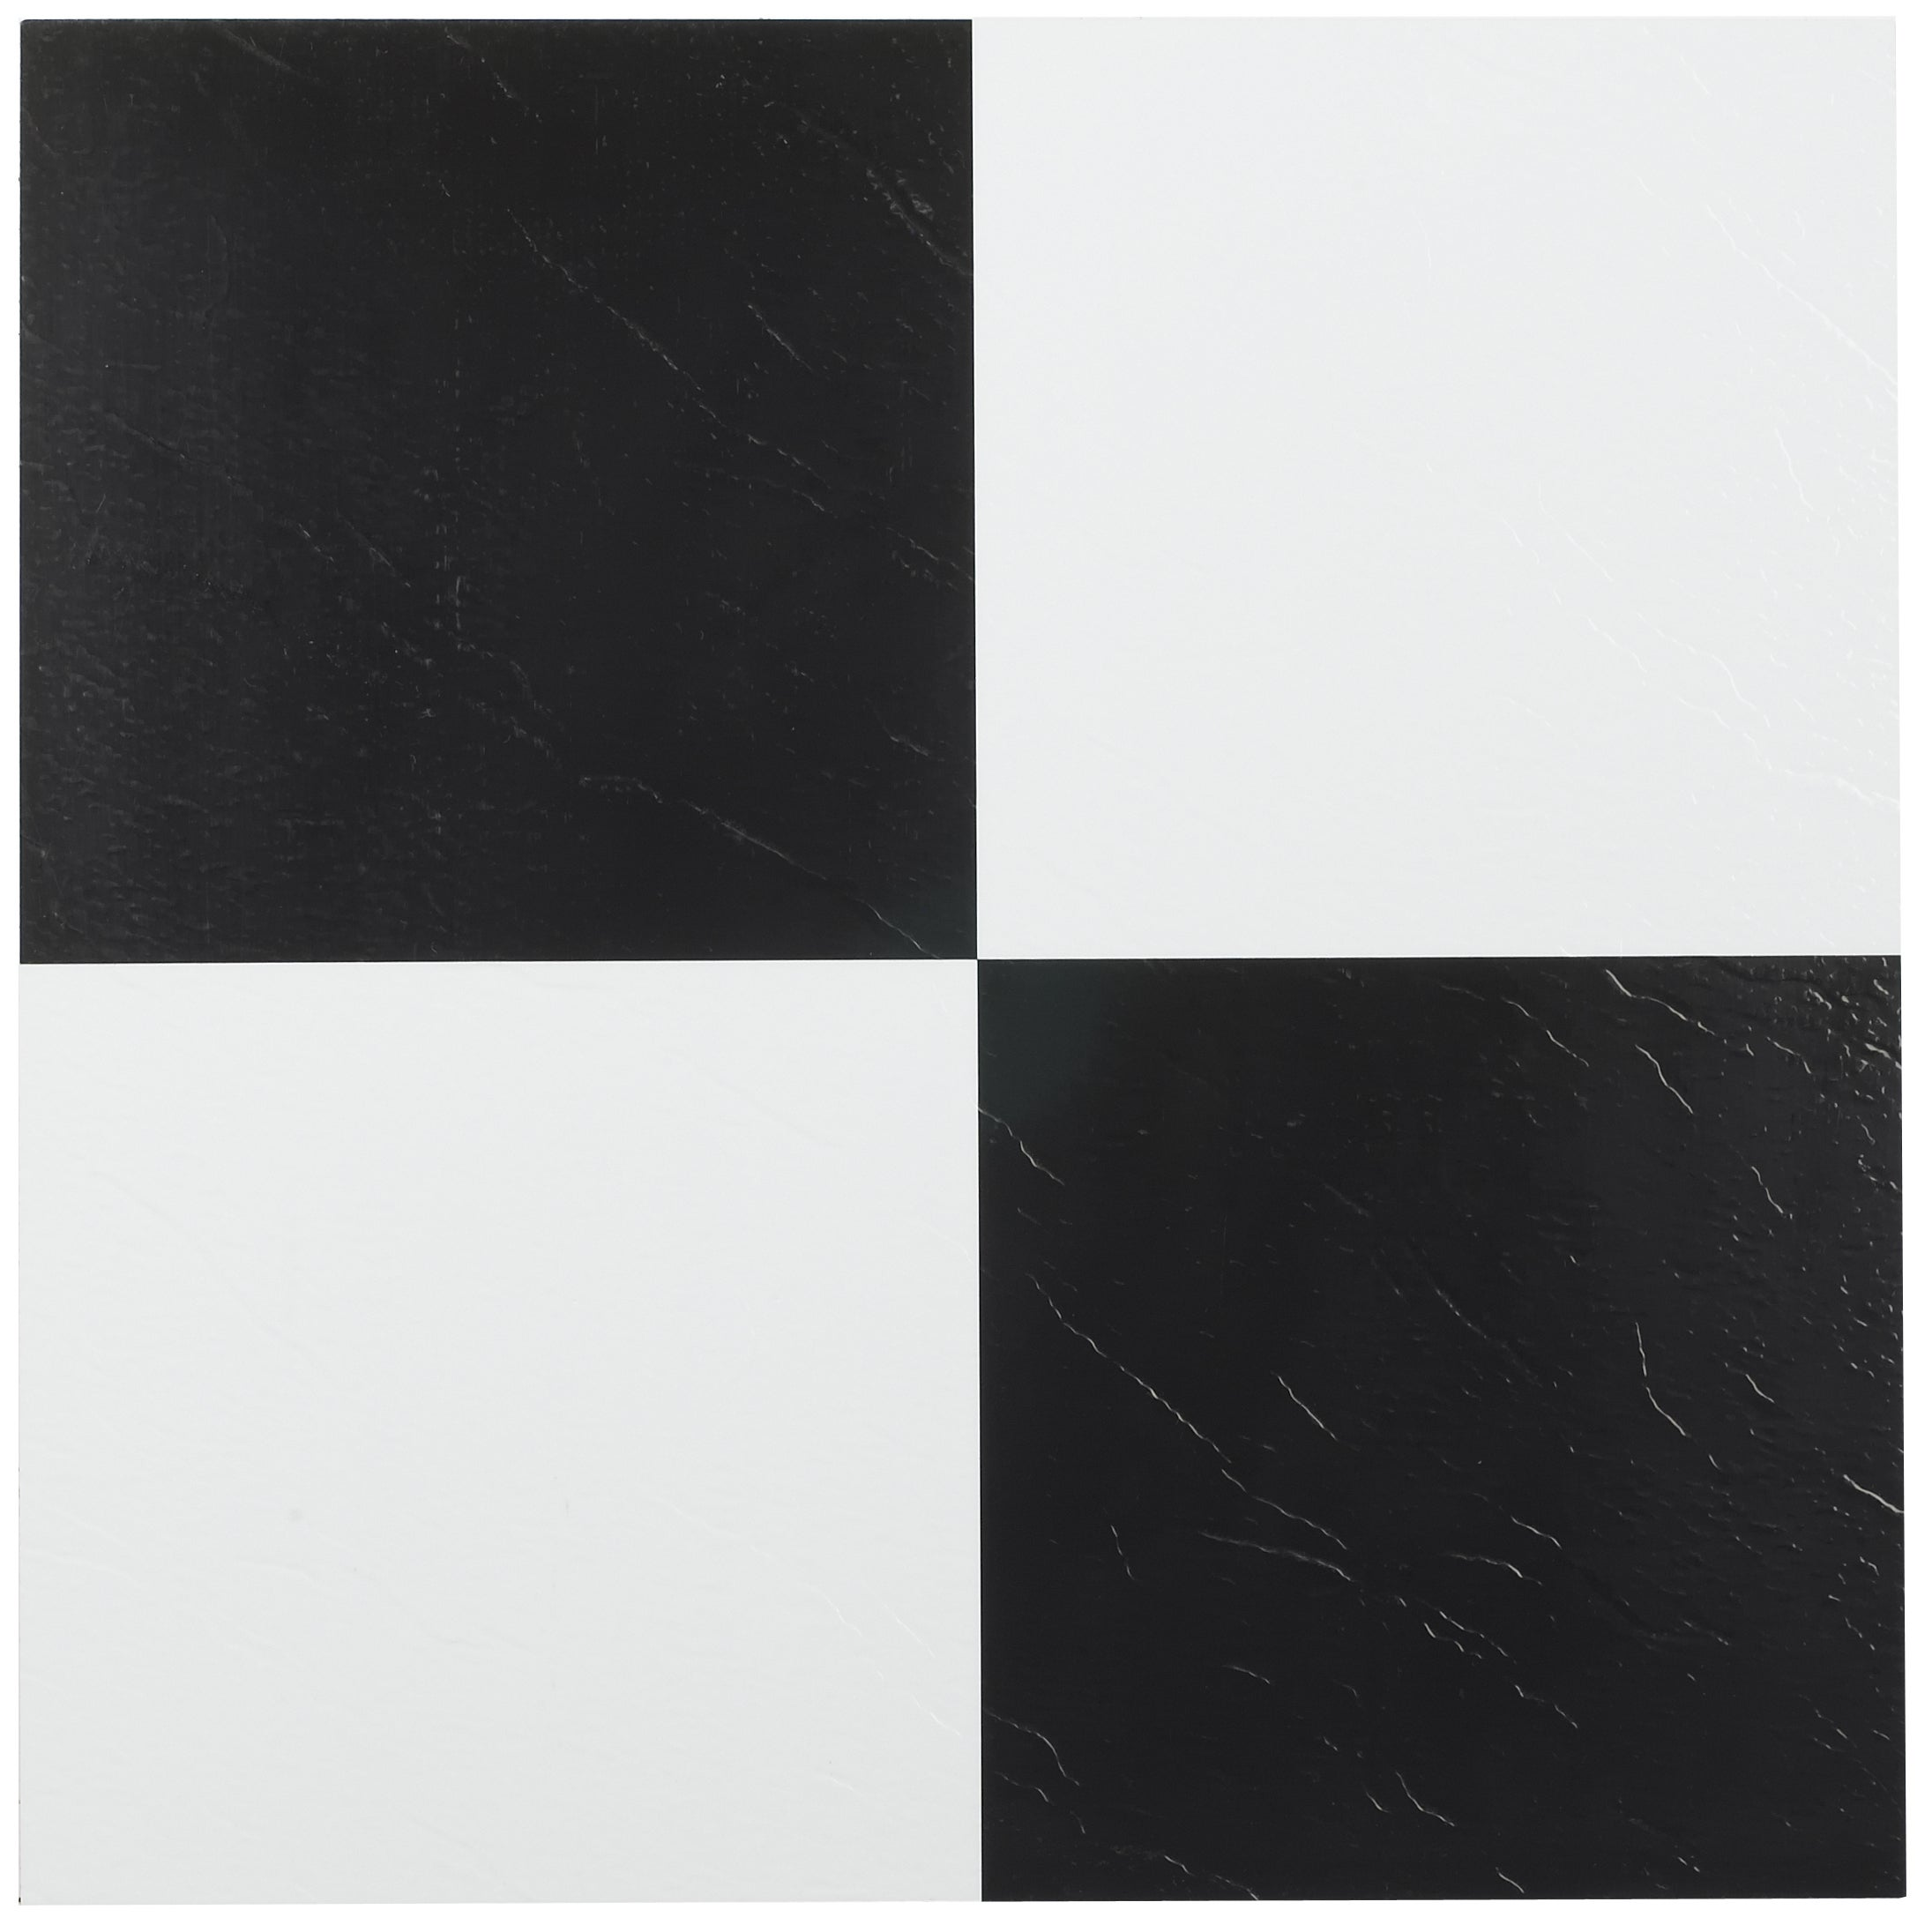 Achim tivoli black white 12x12 self adhesive vinyl floor tile achim tivoli black white 12x12 self adhesive vinyl floor tile 45 tiles45 sq ft free shipping on orders over 45 overstock 17811546 dailygadgetfo Images